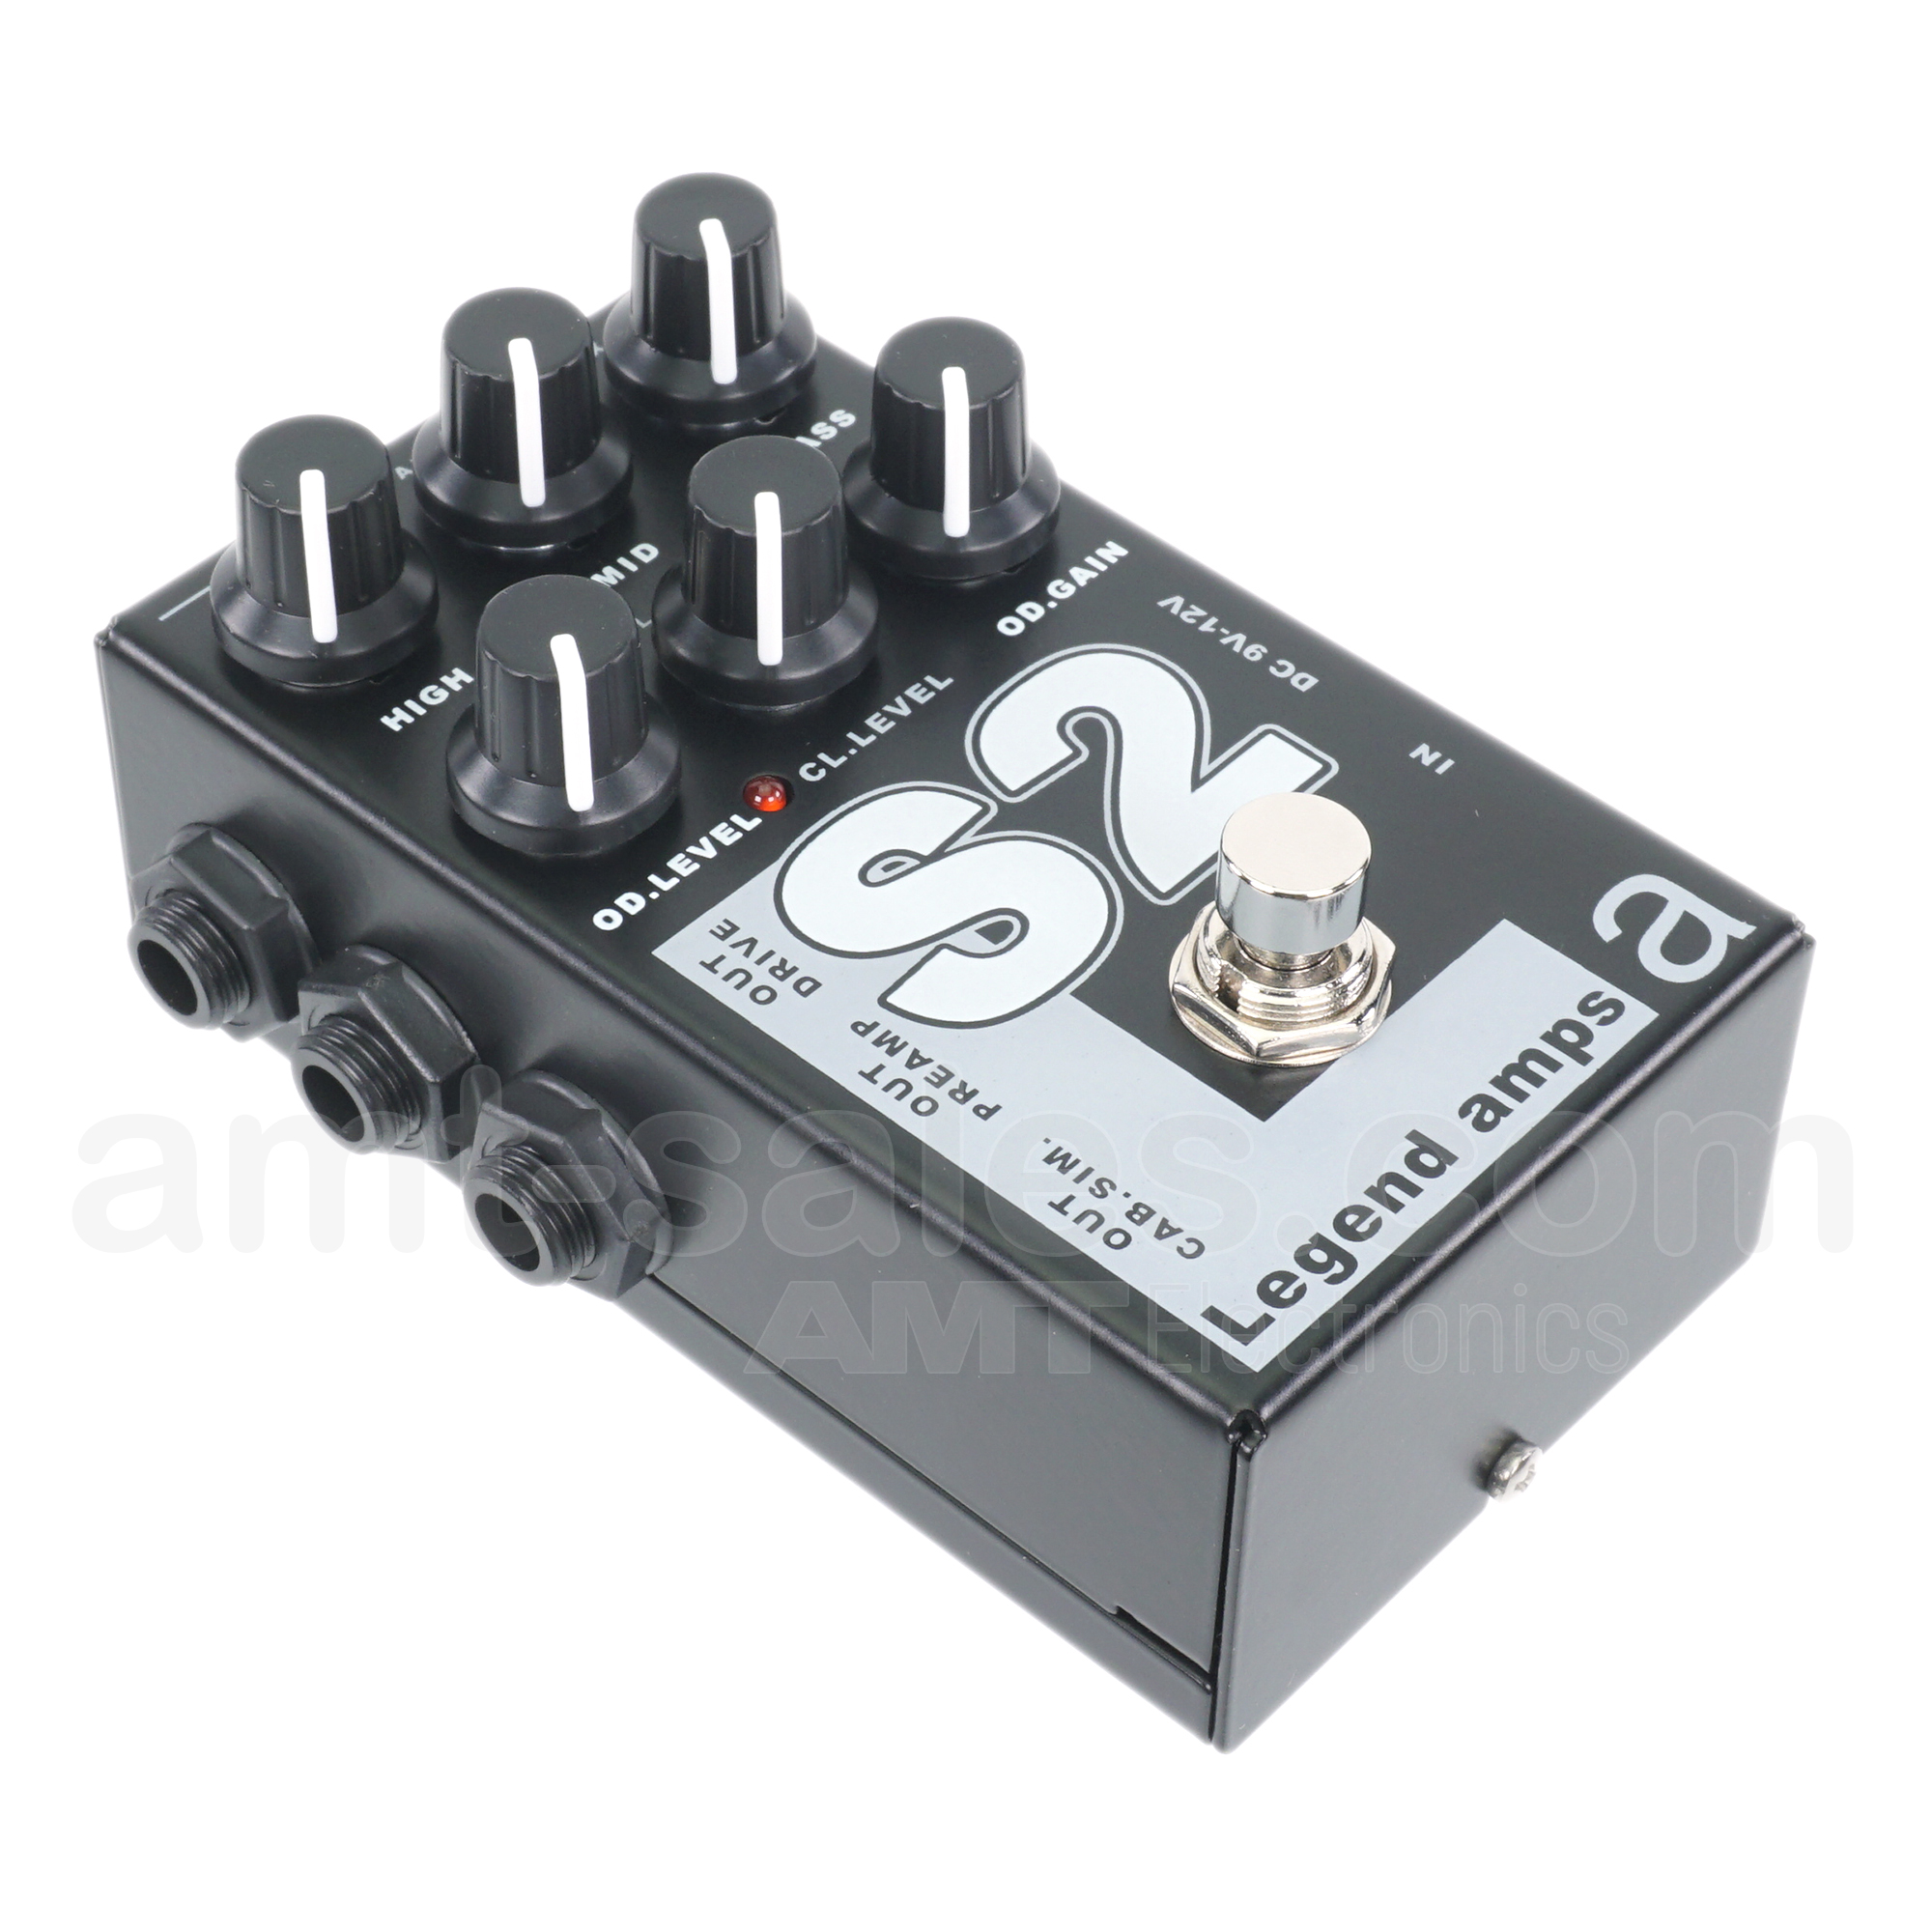 AMT S2 - 2 channels guitar preamp/distortion pedal (Soldano)